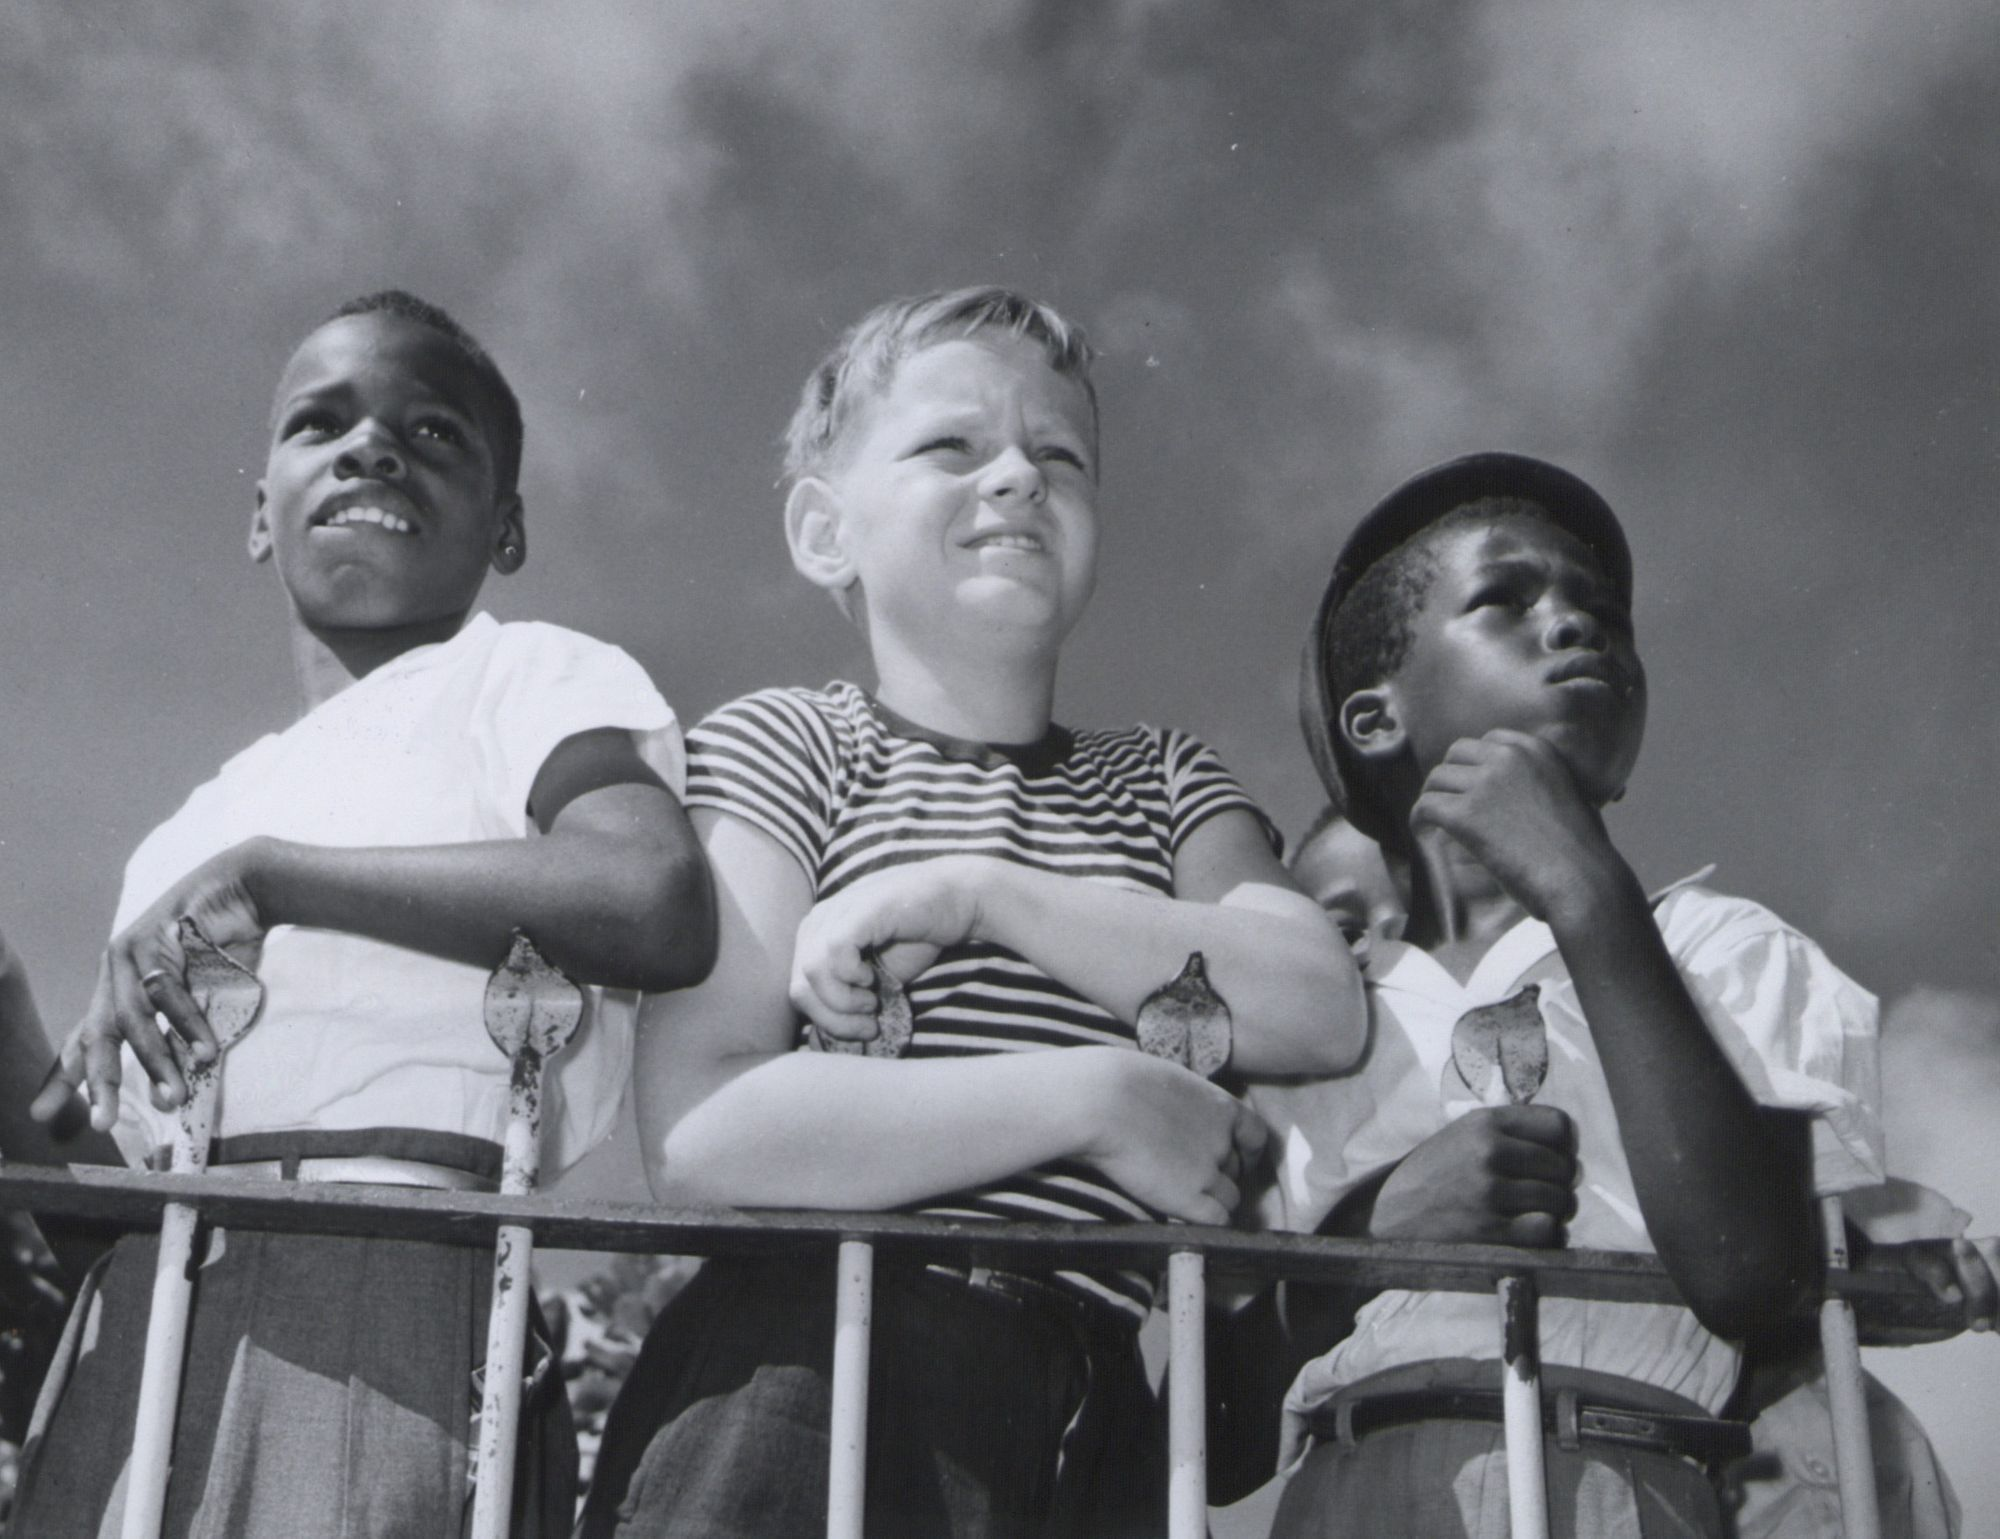 Growing up as a white Baha'i in a segregated world